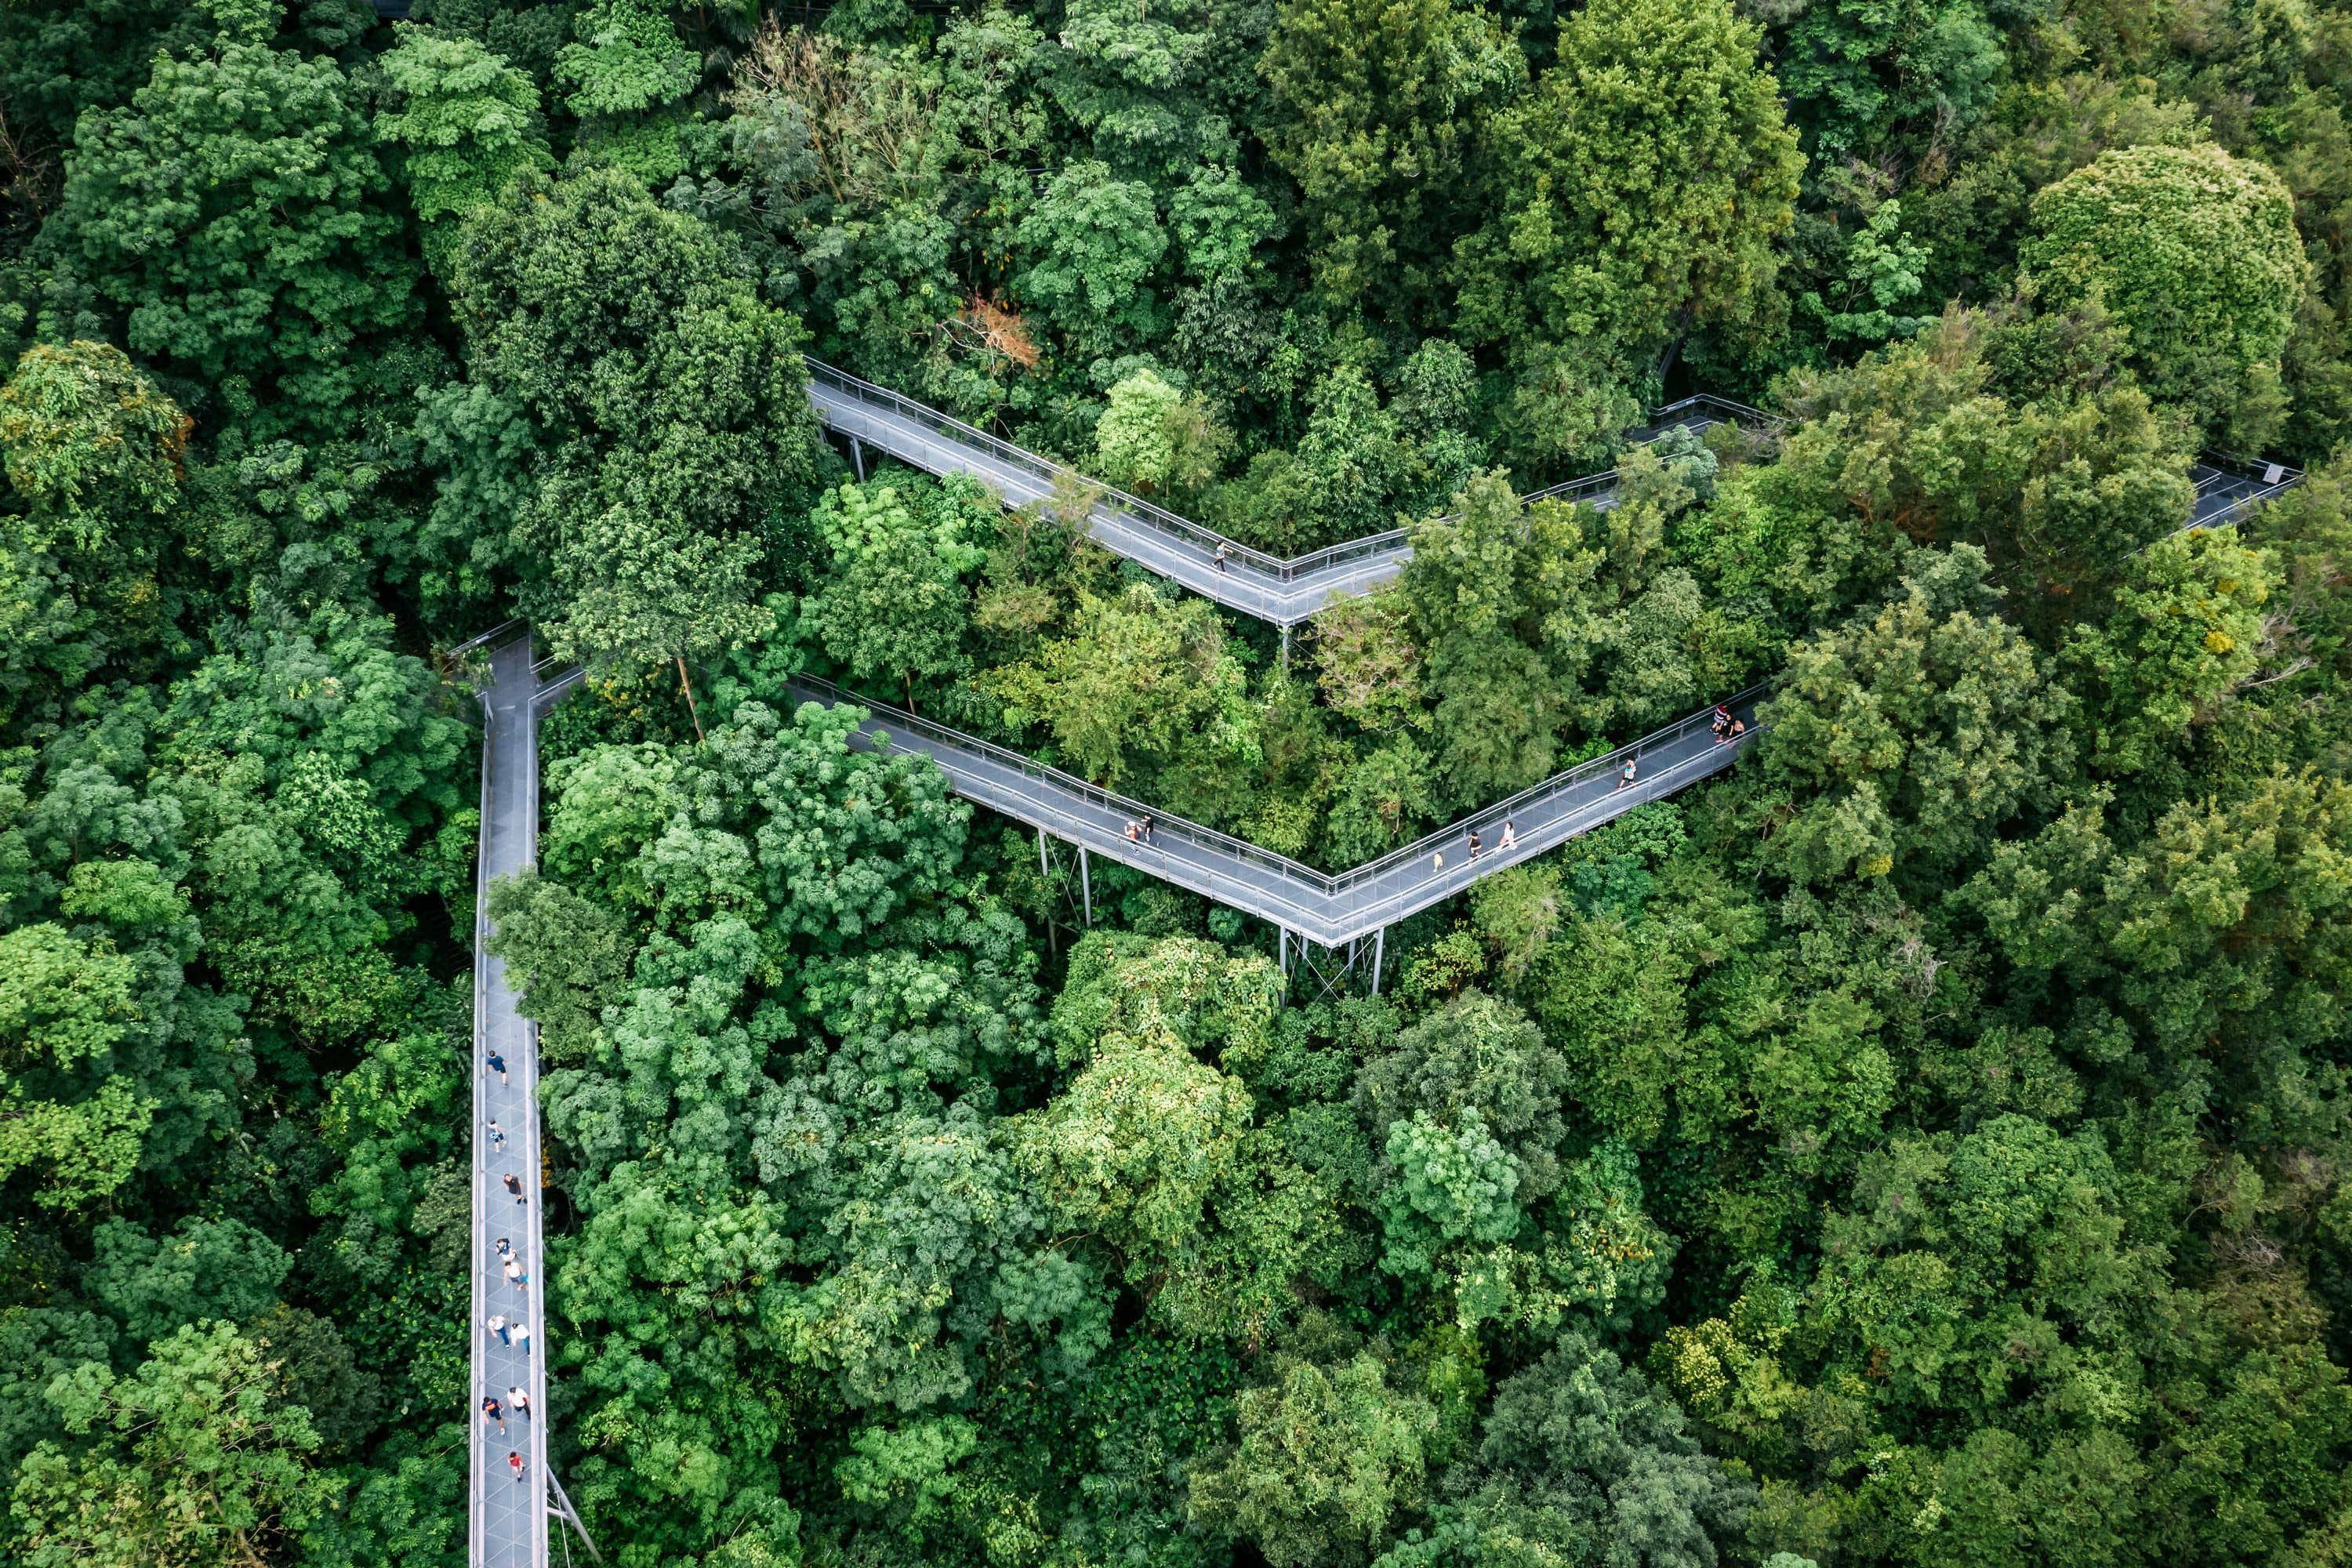 Raised paths appear from the trees canopy at the Southern Ridges, Singapore